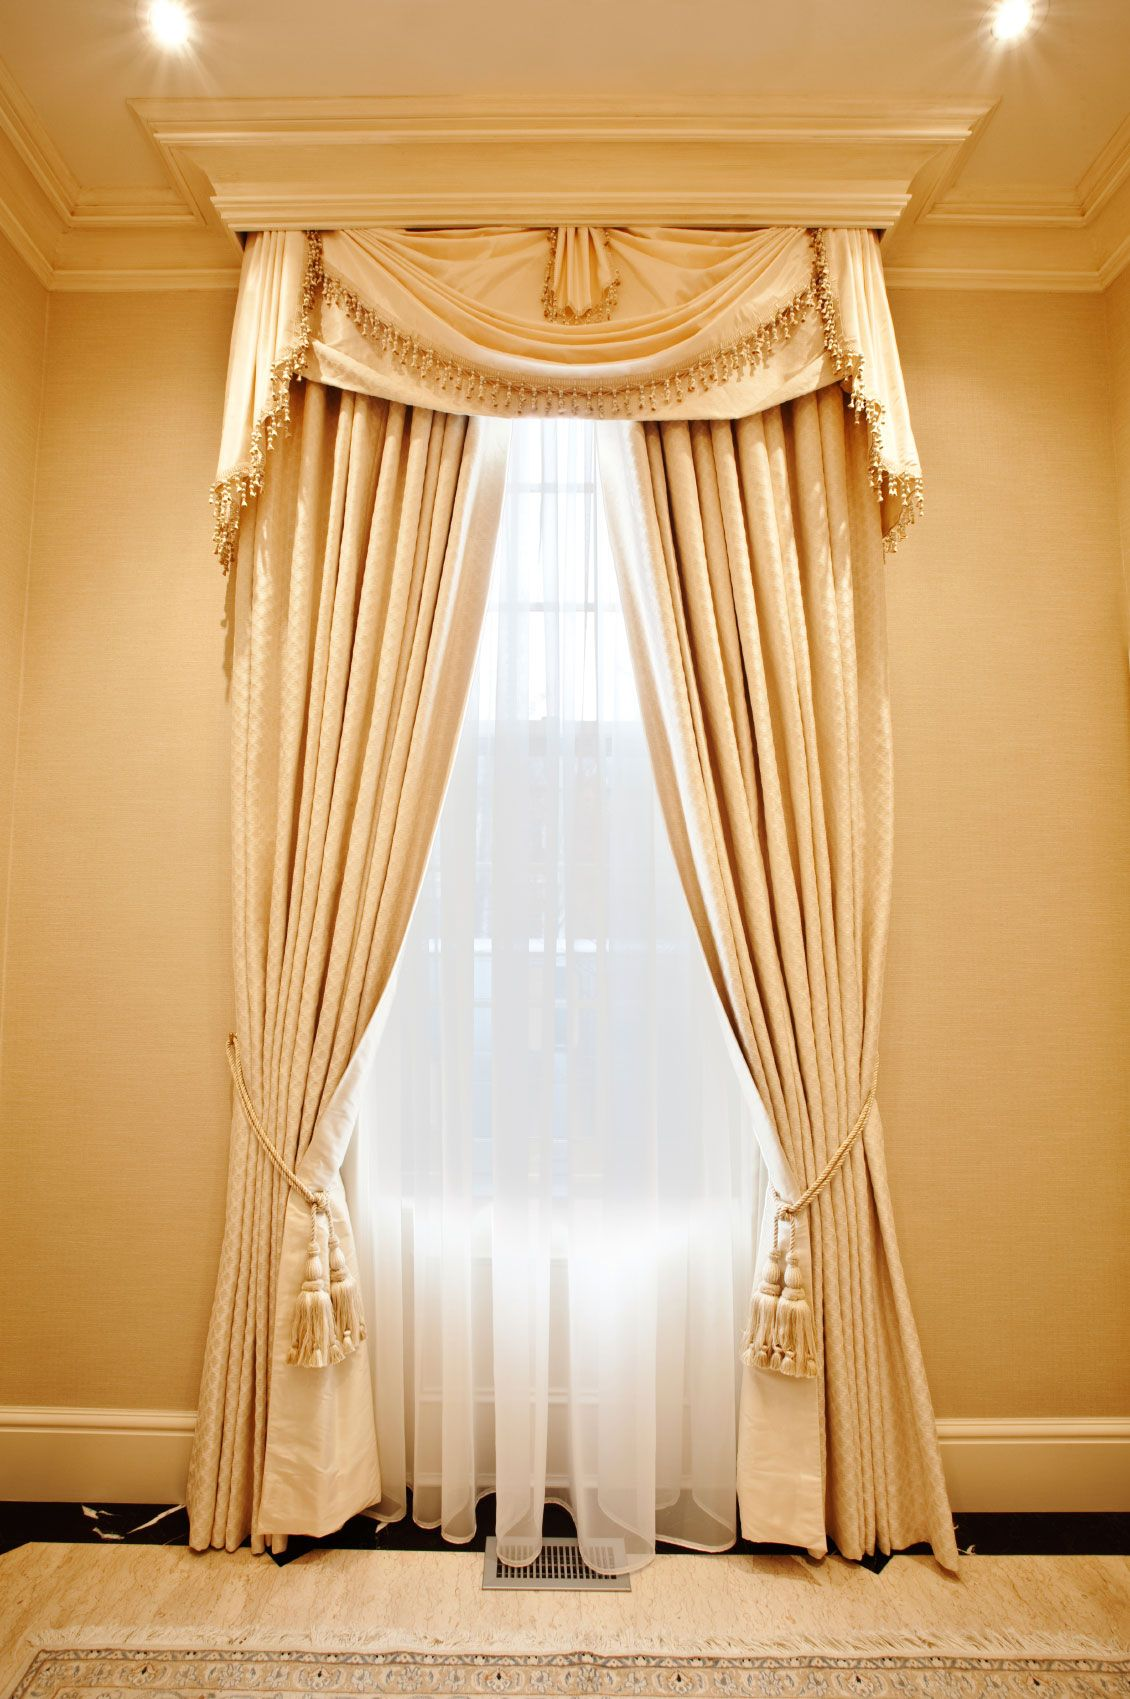 Home decor ideas curtain ideas to enhance the beauty for Home drapes and curtains